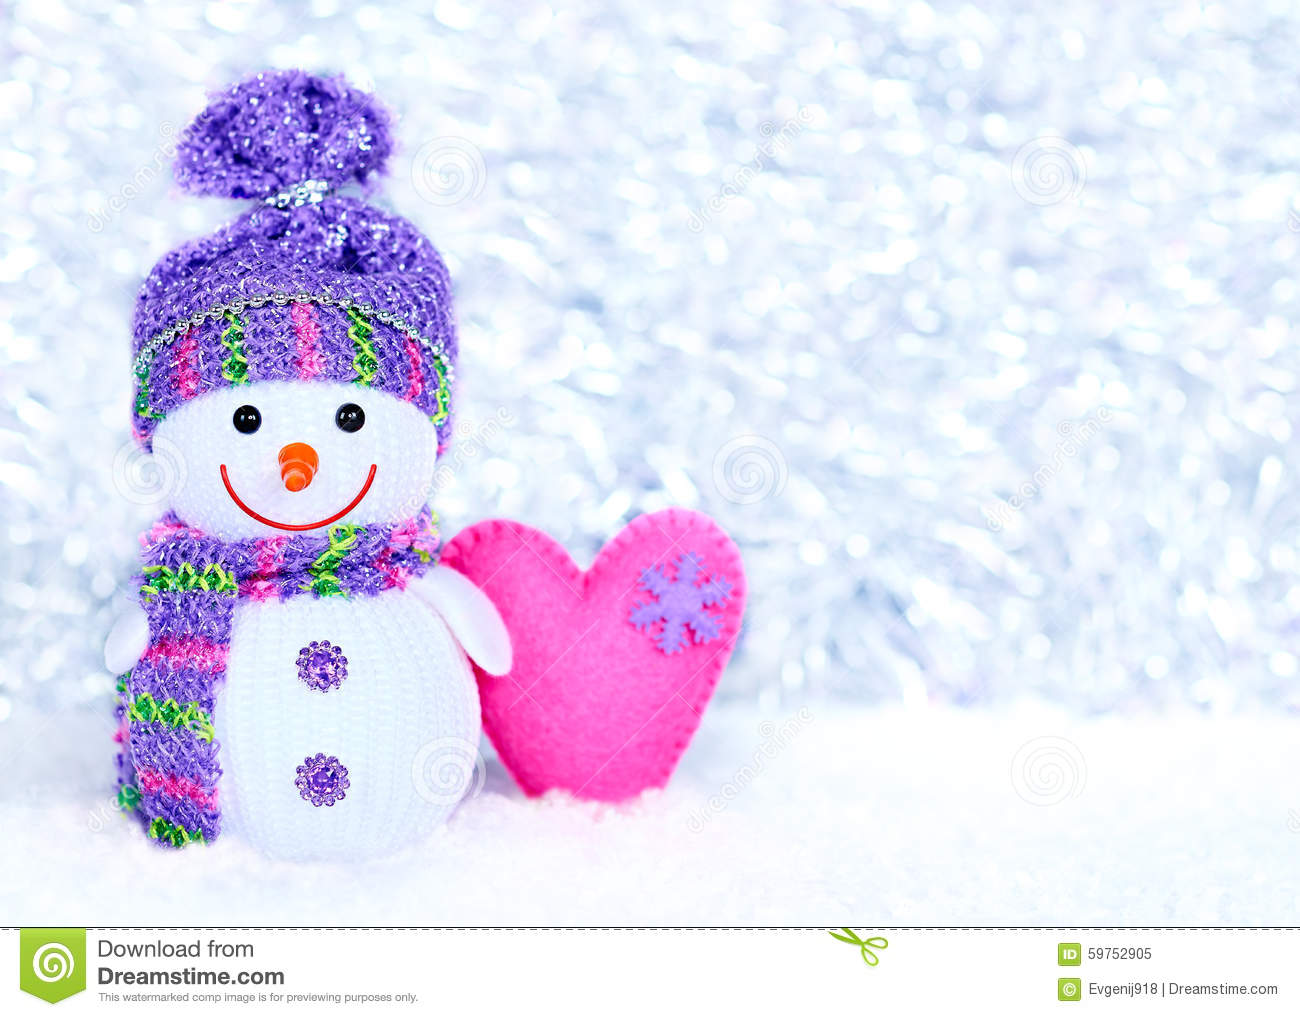 New Year 2016. Happy Snowman On Snow With Heart Stock Photo - Image: 59752905